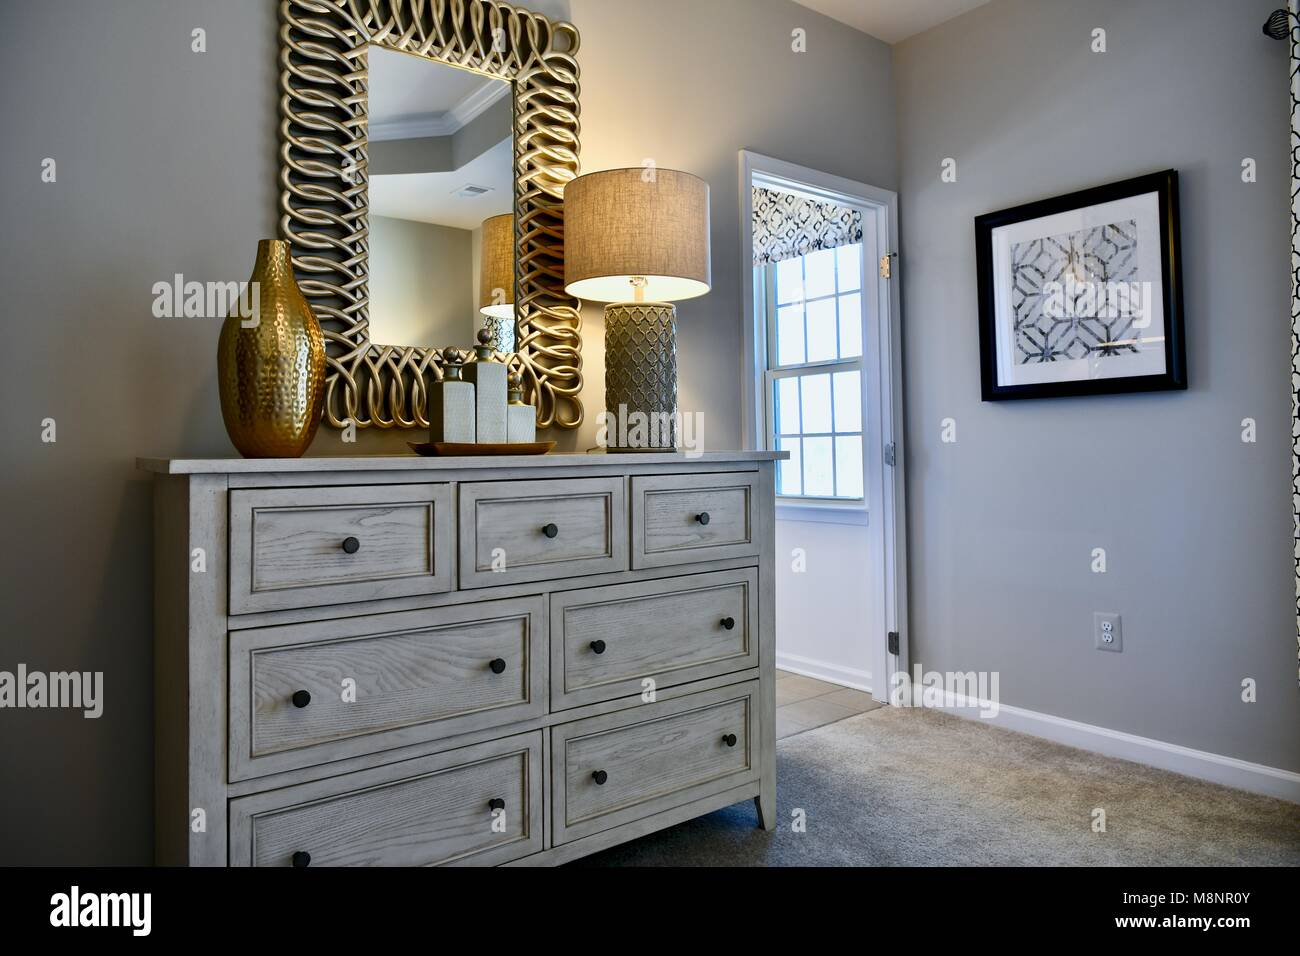 Modern Bedroom Dresser With Gold Accented Decor And Mirror Above Stock Photo Alamy